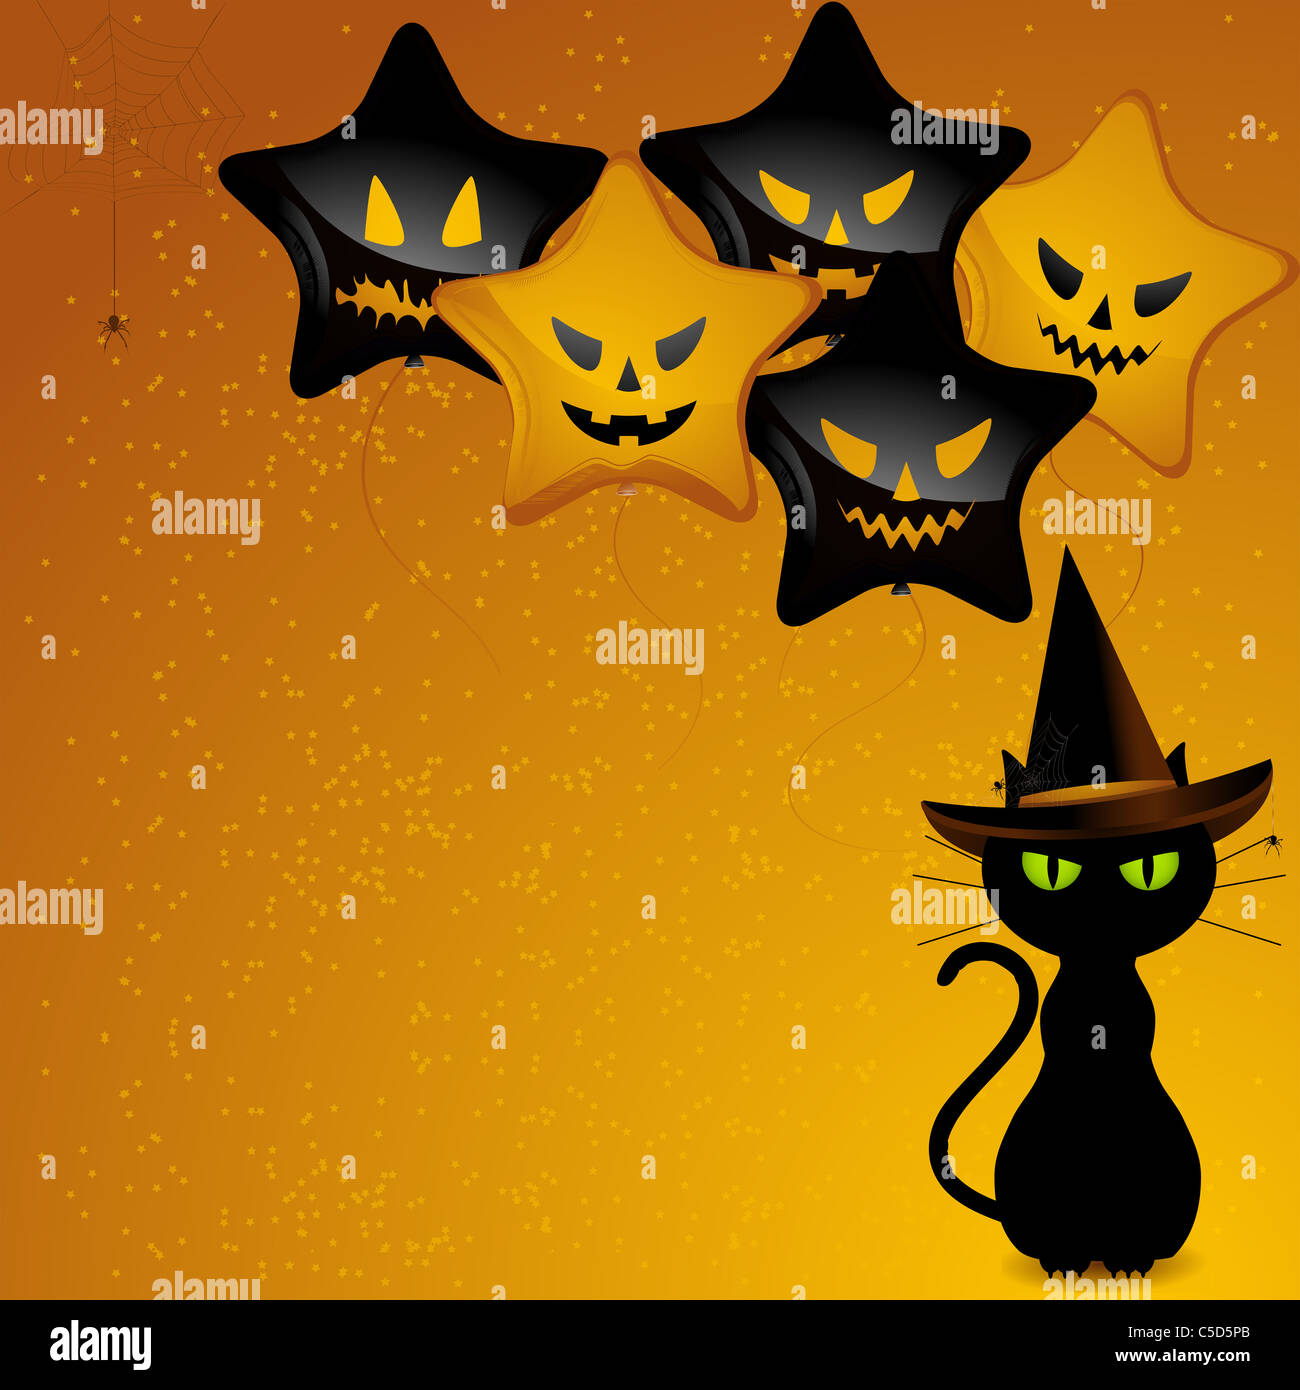 black cat wearing witches hat sat in front of orange and black